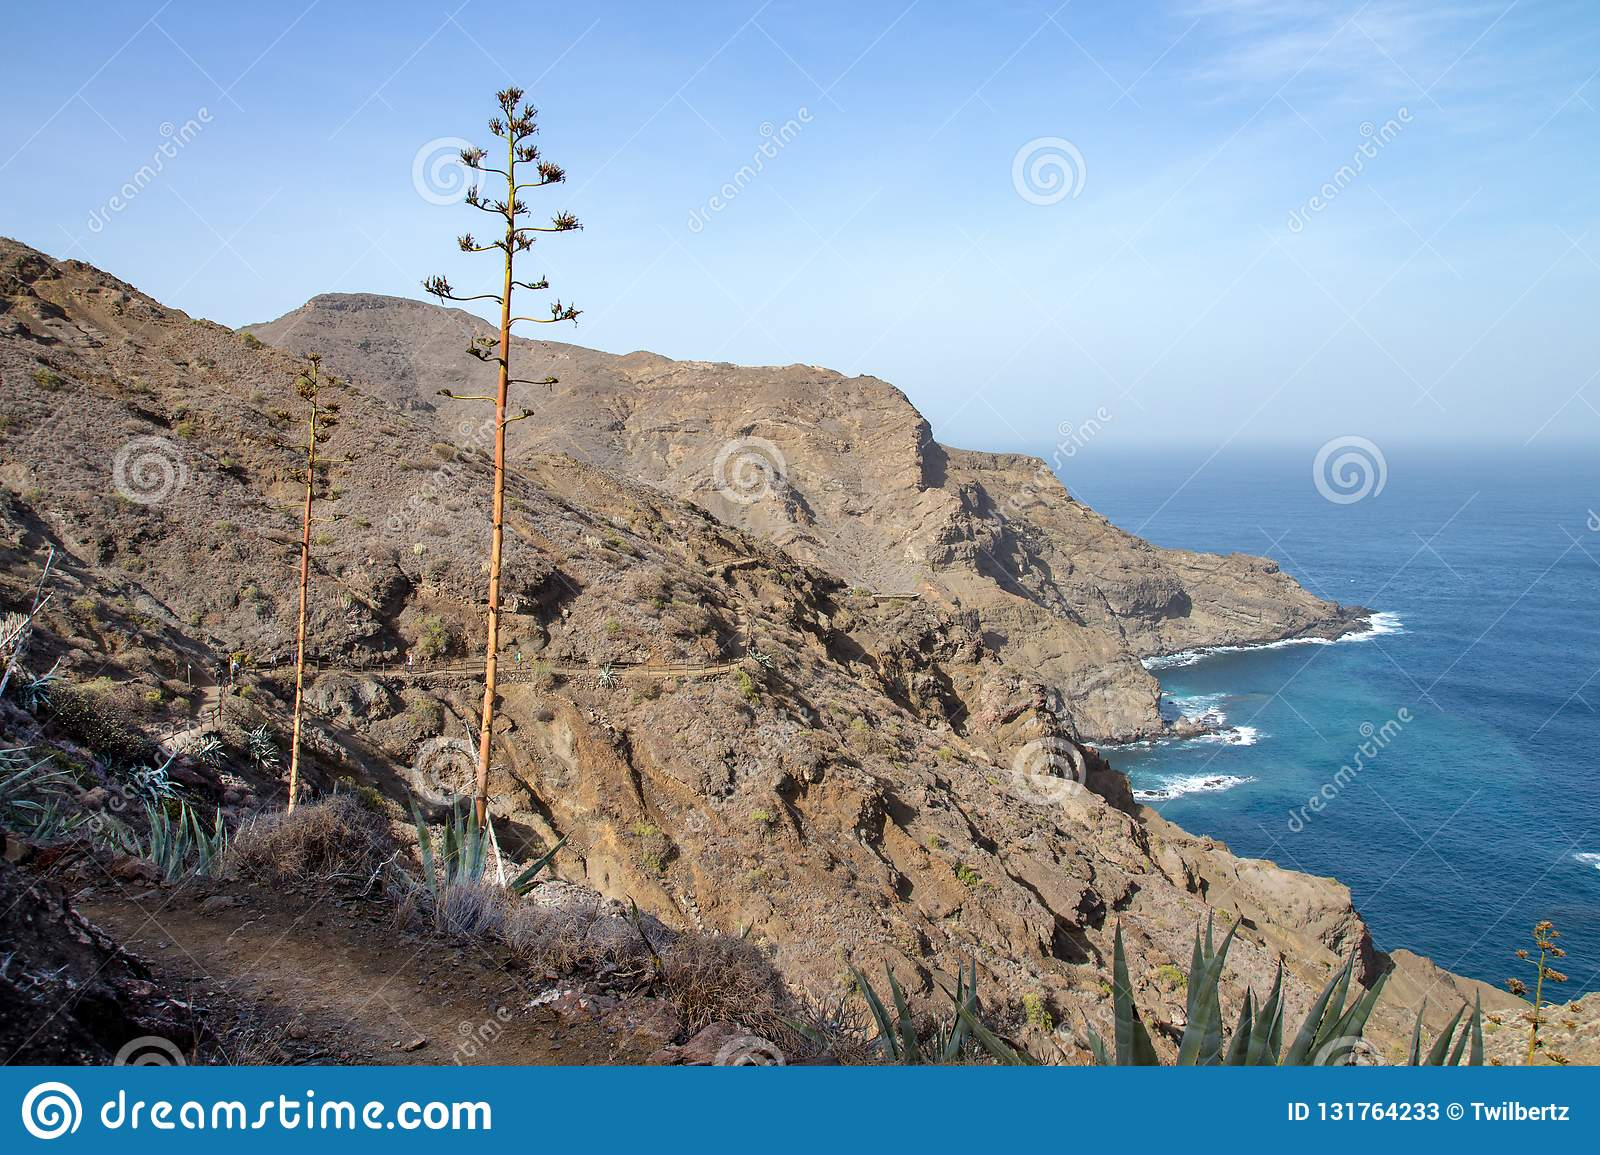 Nice view of north coast with ocean and mountains in La Gomera